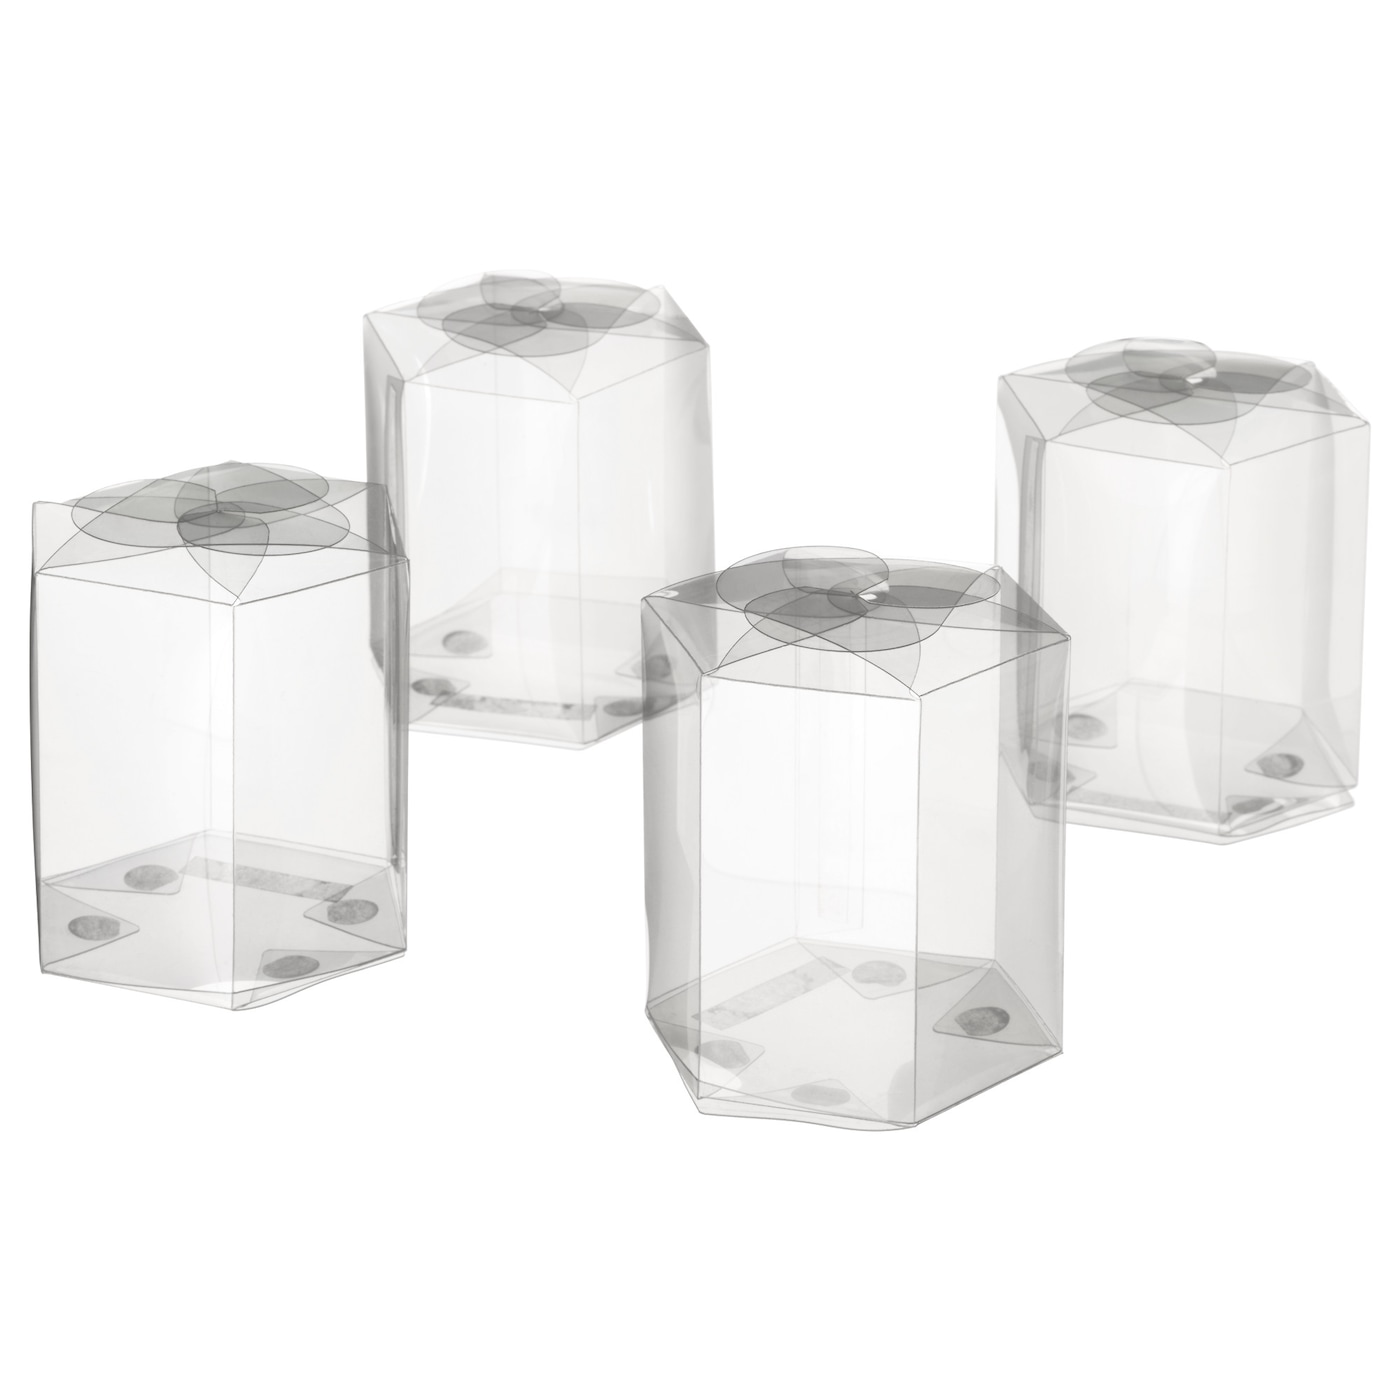 givande gift box for candy transparent 9 cm ikea. Black Bedroom Furniture Sets. Home Design Ideas